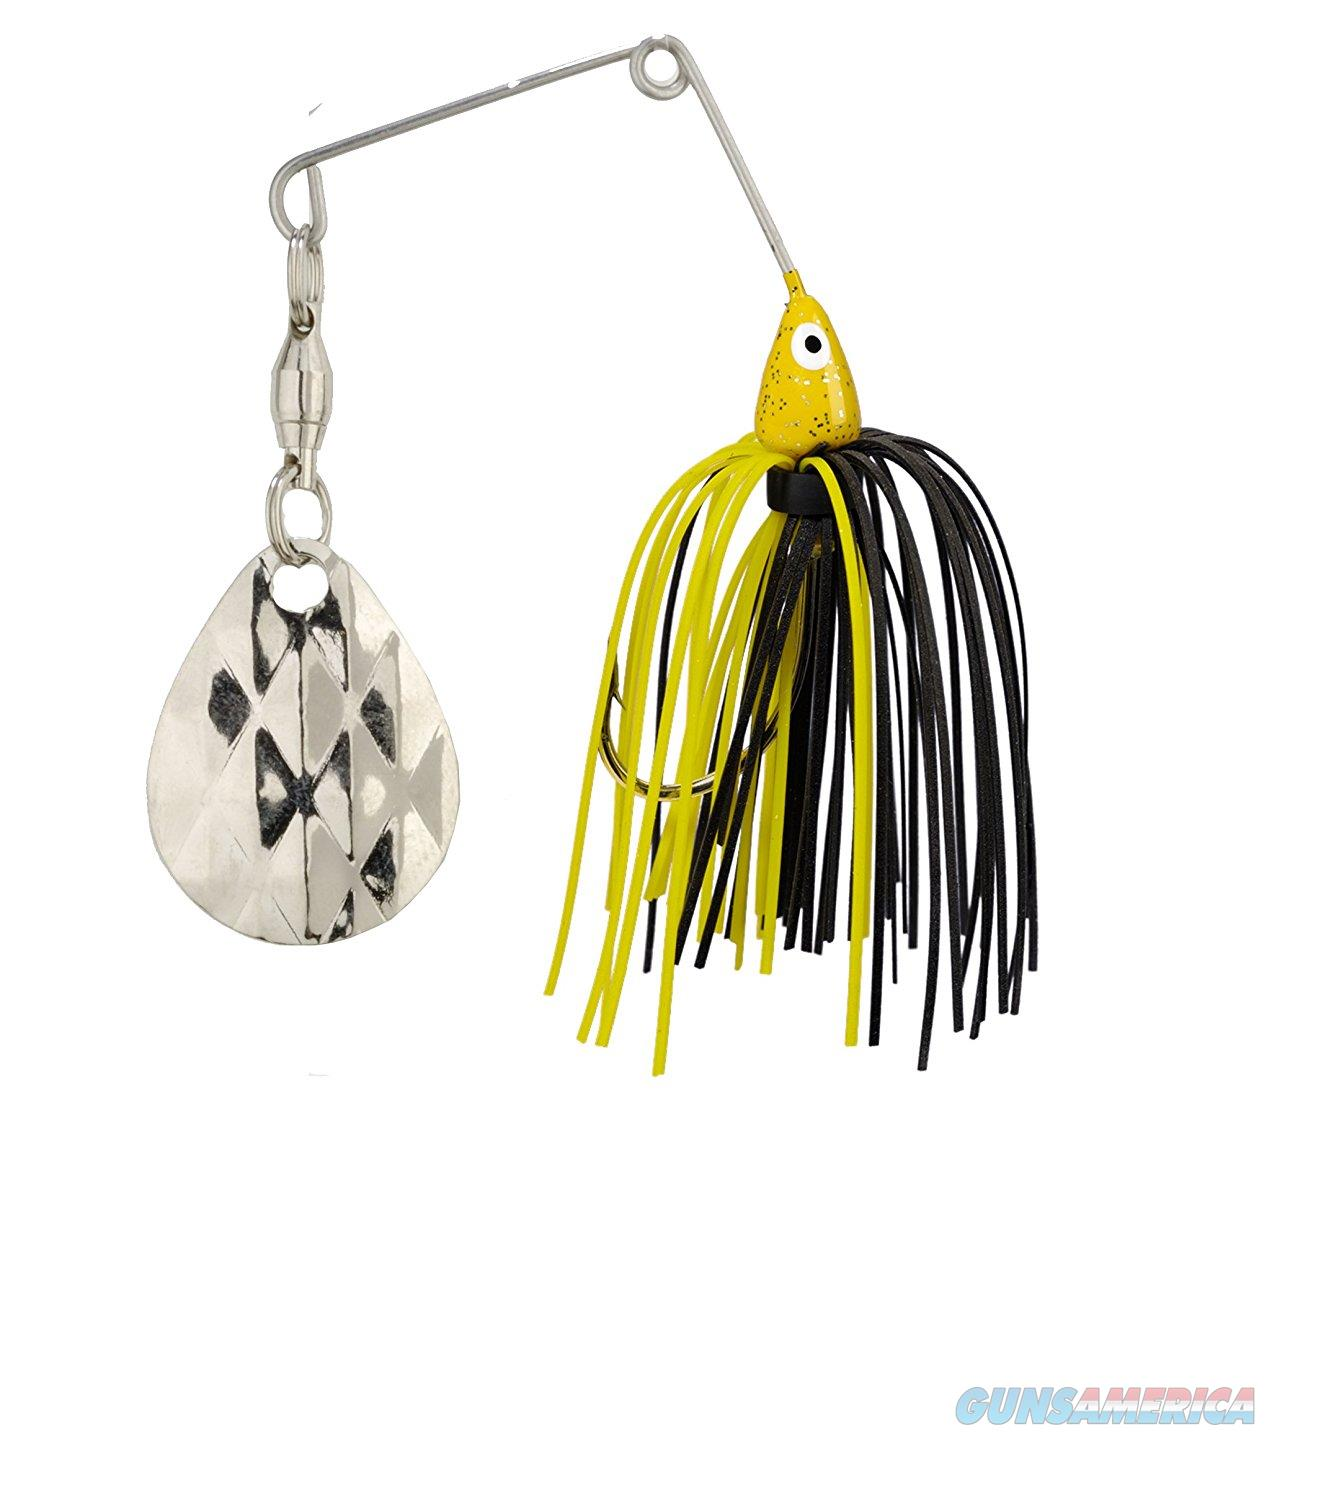 Strike King Mini King Spinnerbait Yellow  Non-Guns > Fishing/Spearfishing